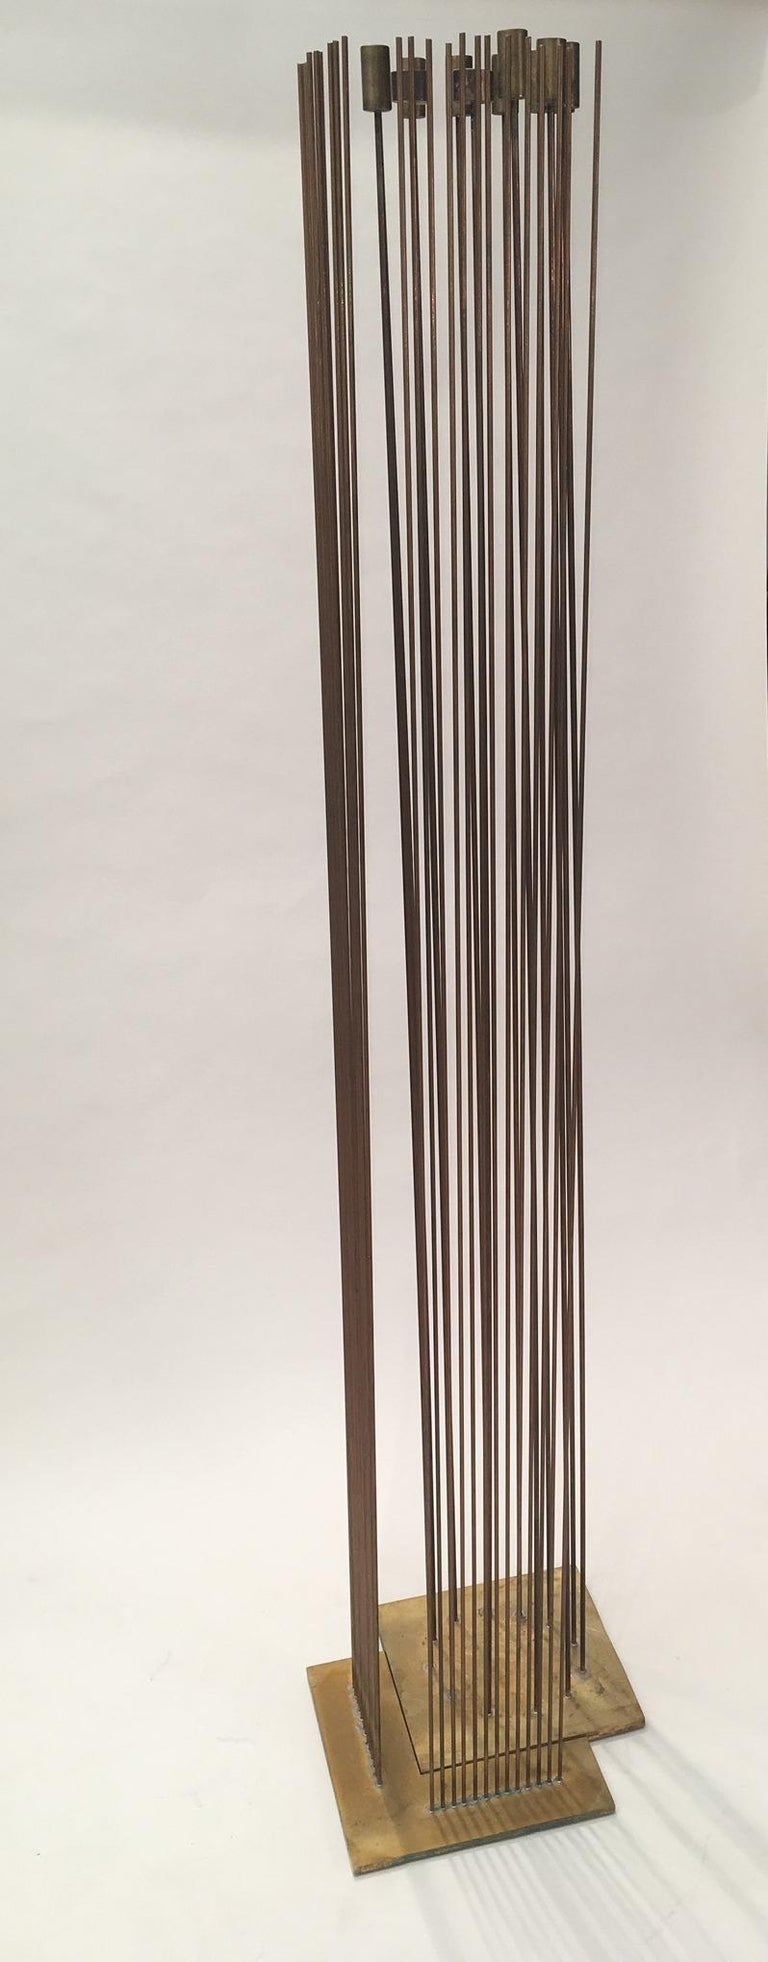 Val Bertoia Sound Sculptures, 2012 In Excellent Condition For Sale In New York, NY